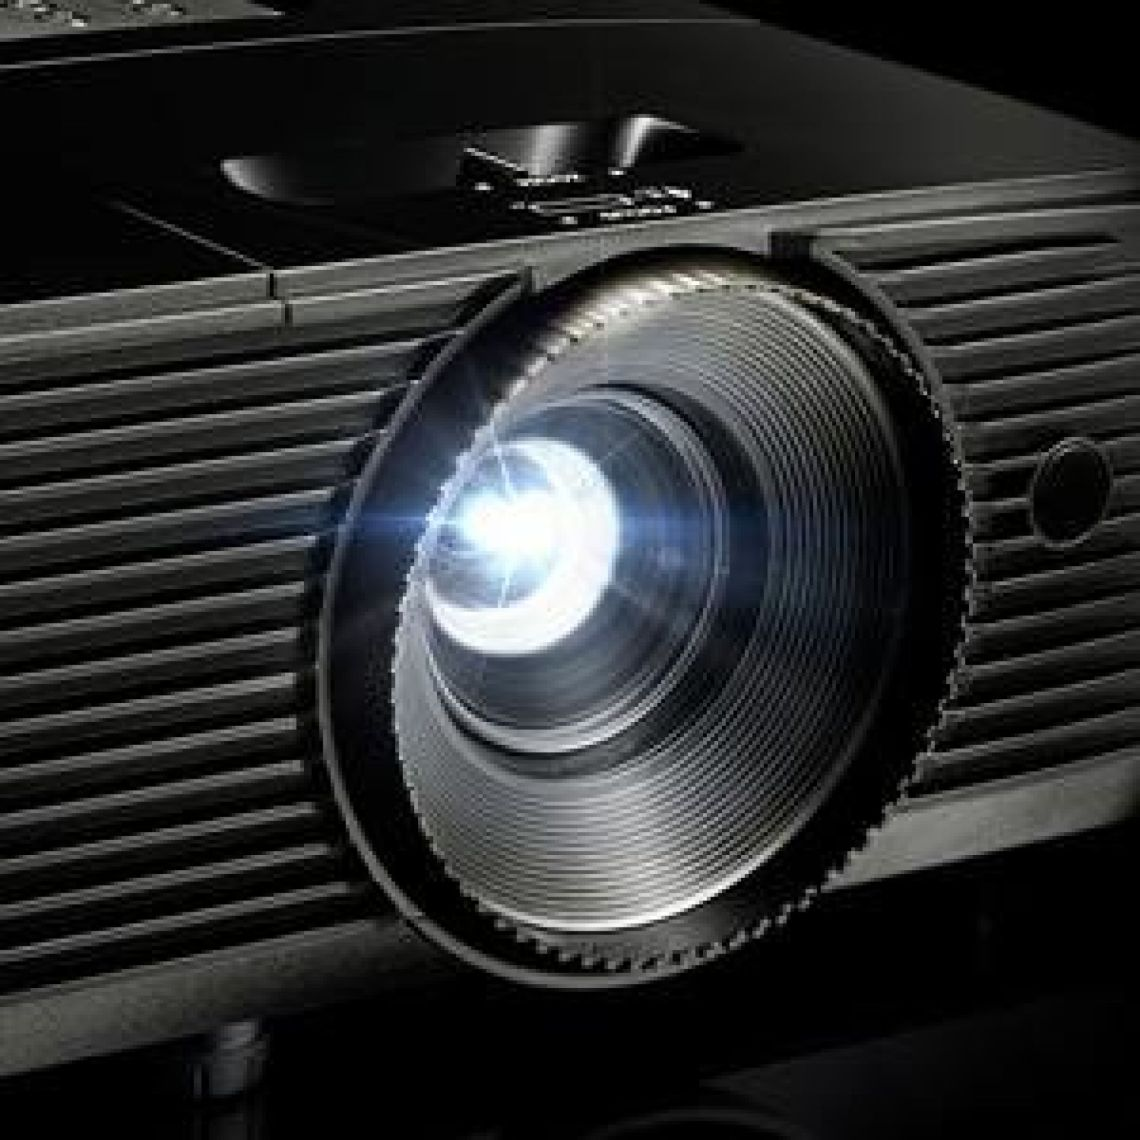 Amazon.com: Optoma HD143X 1080p 3000 Lumens 3D DLP Home Theater Projector: Electronics